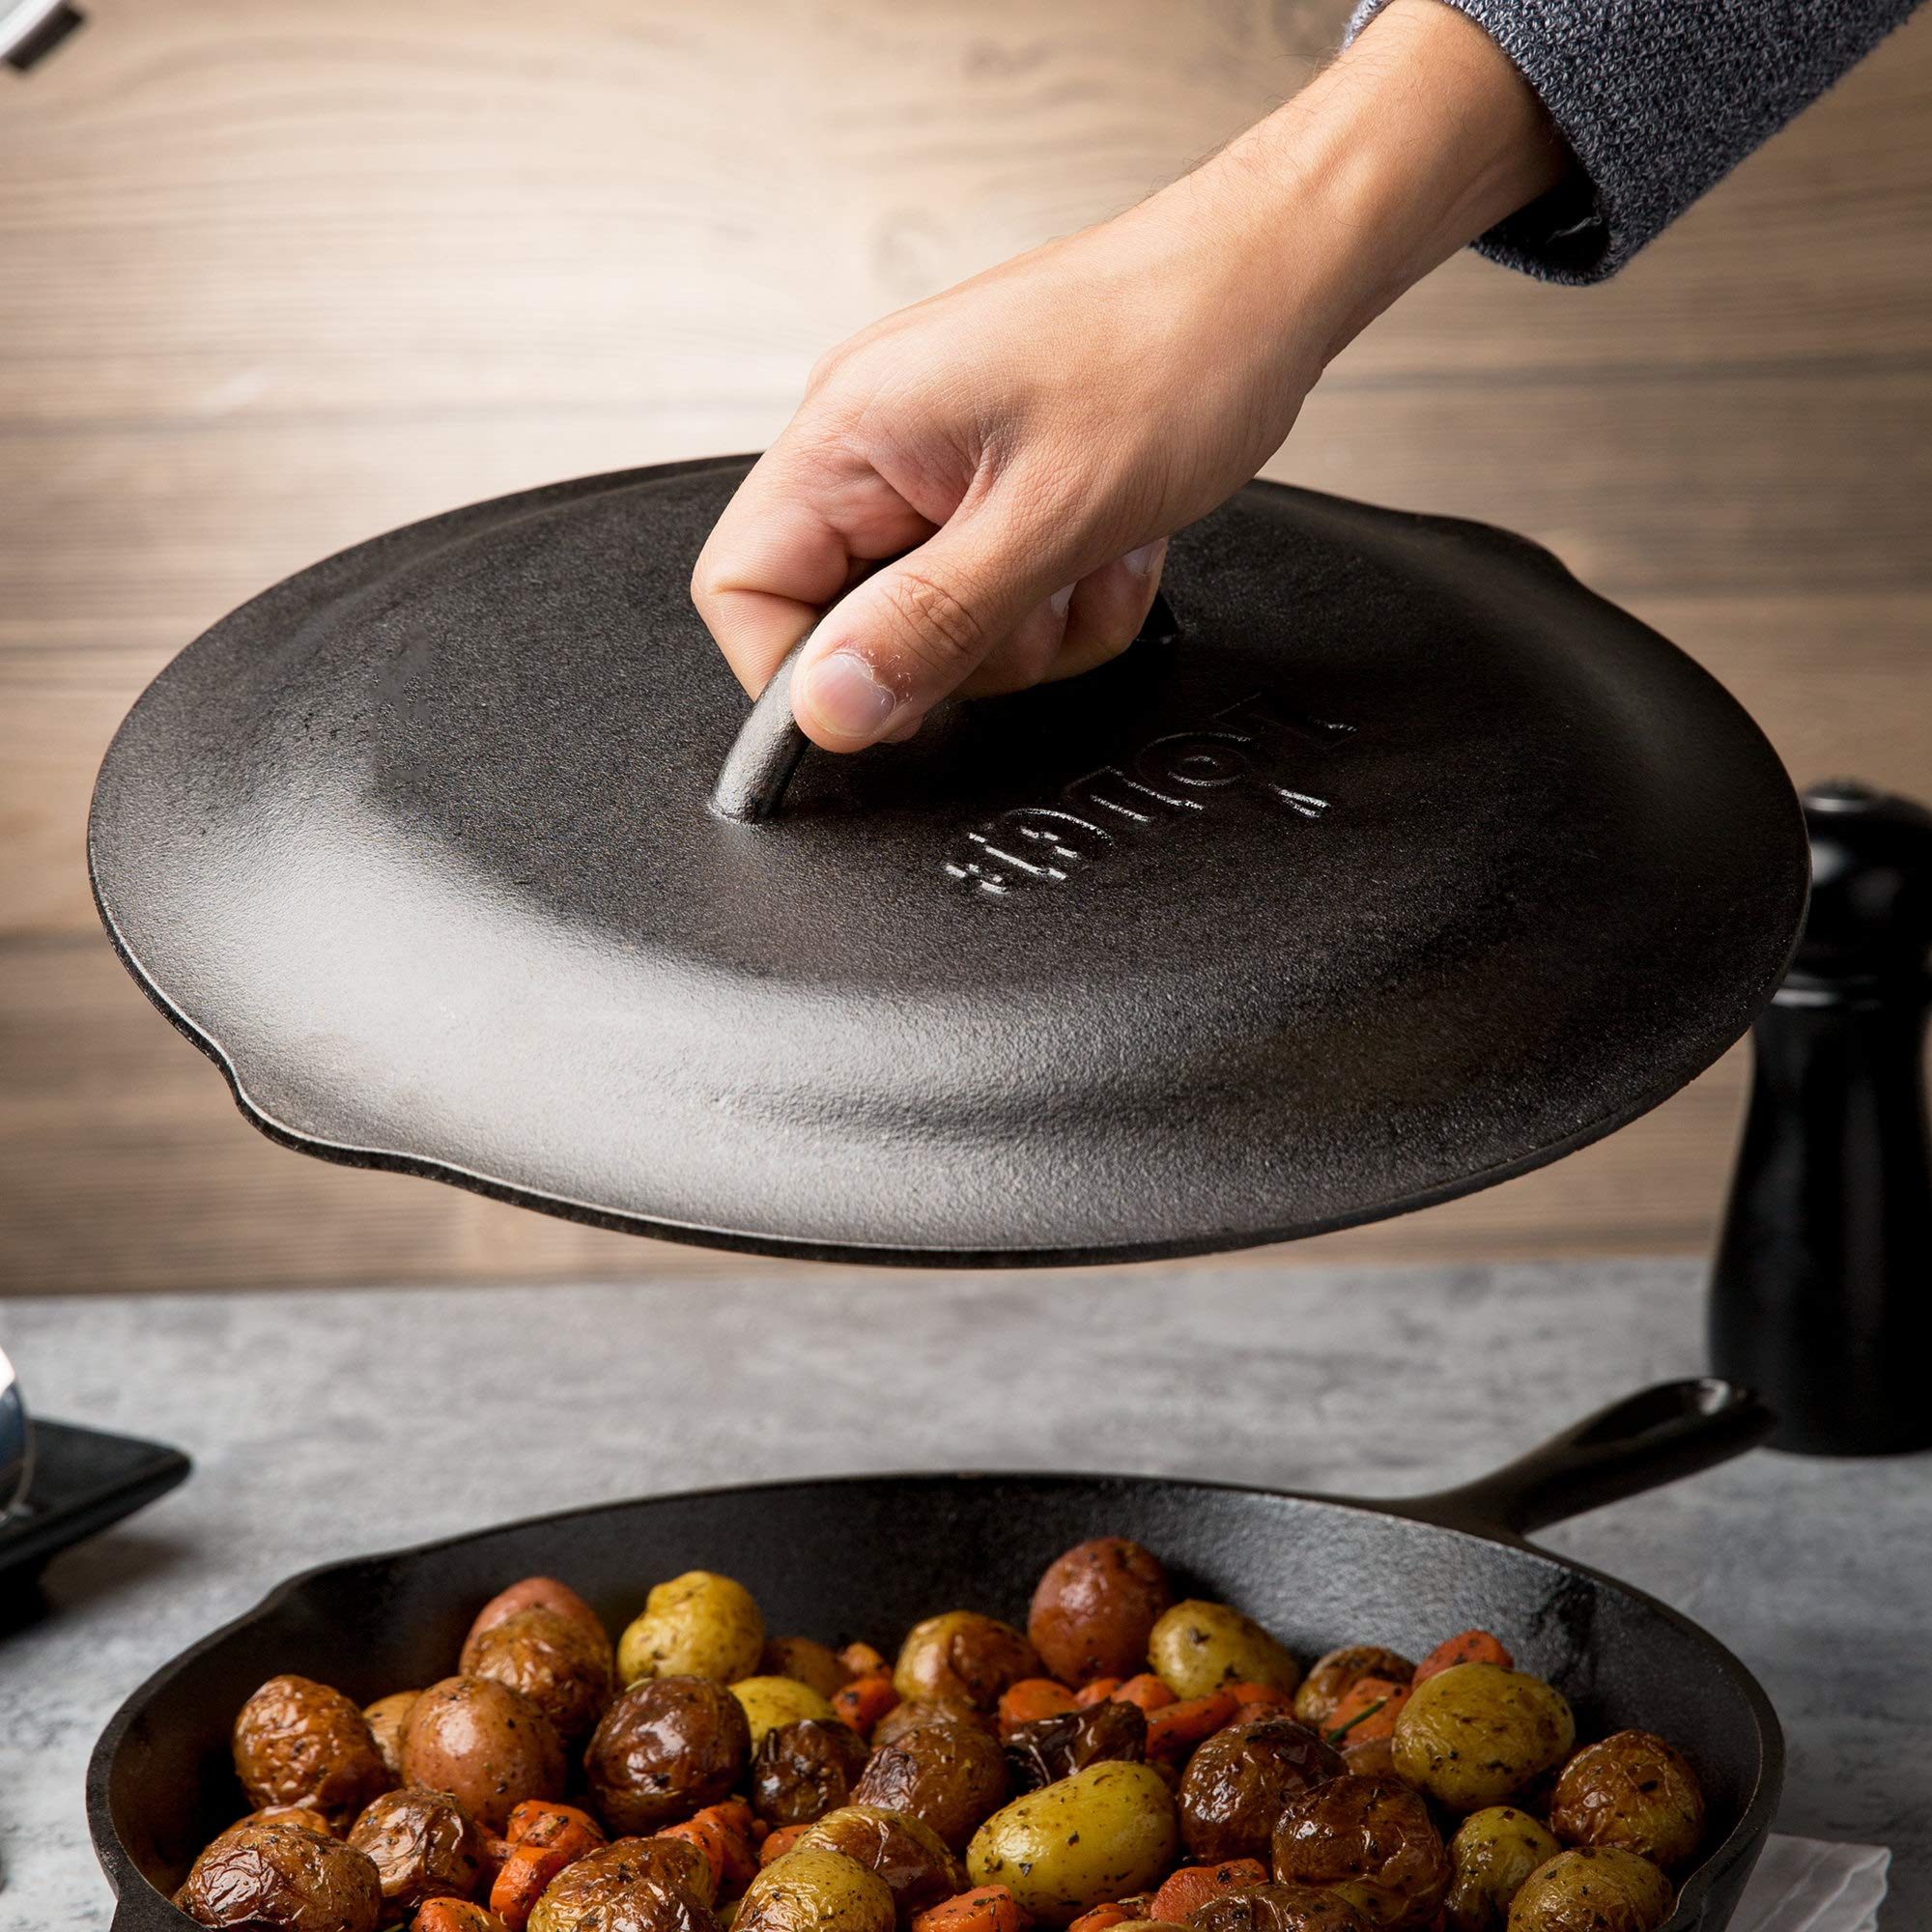 Lodge Seasoned Cast Iron Skillet - 12 Inch Ergonomic Frying Pan with Assist Handle with Cast Iron Cover by Lodge (Image #2)